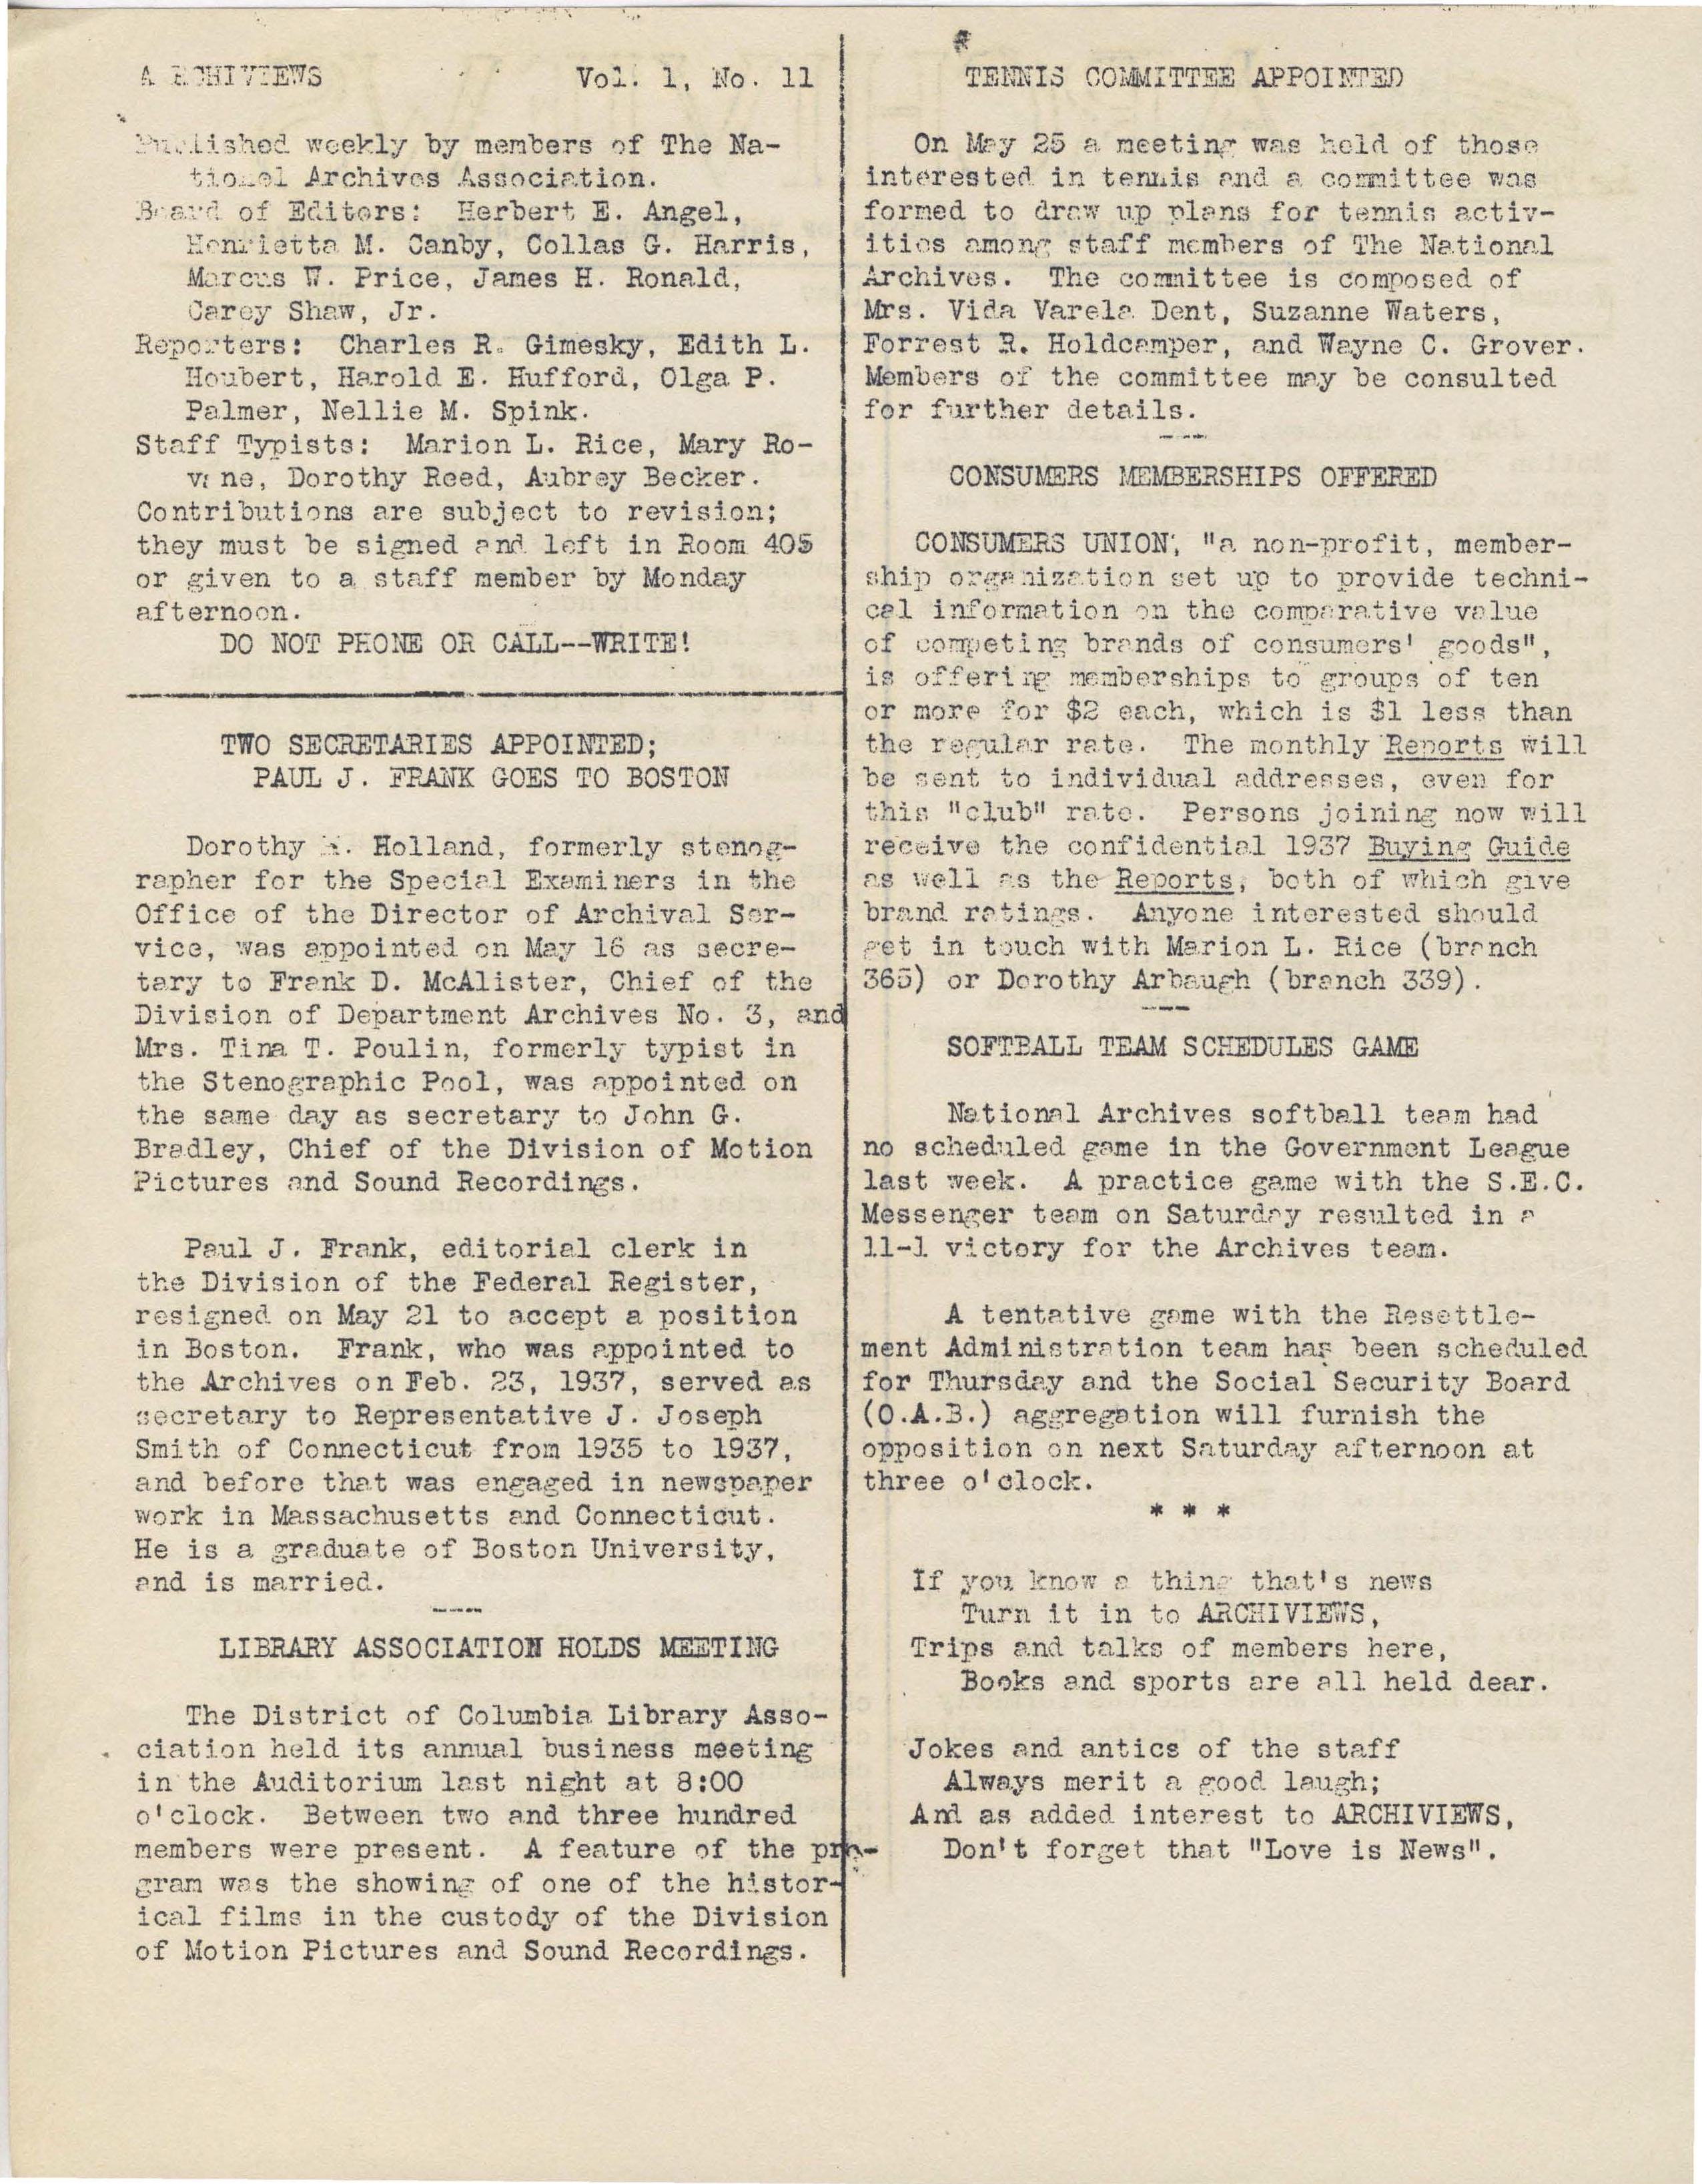 Pages from Archiviews, 1937 - 05-27